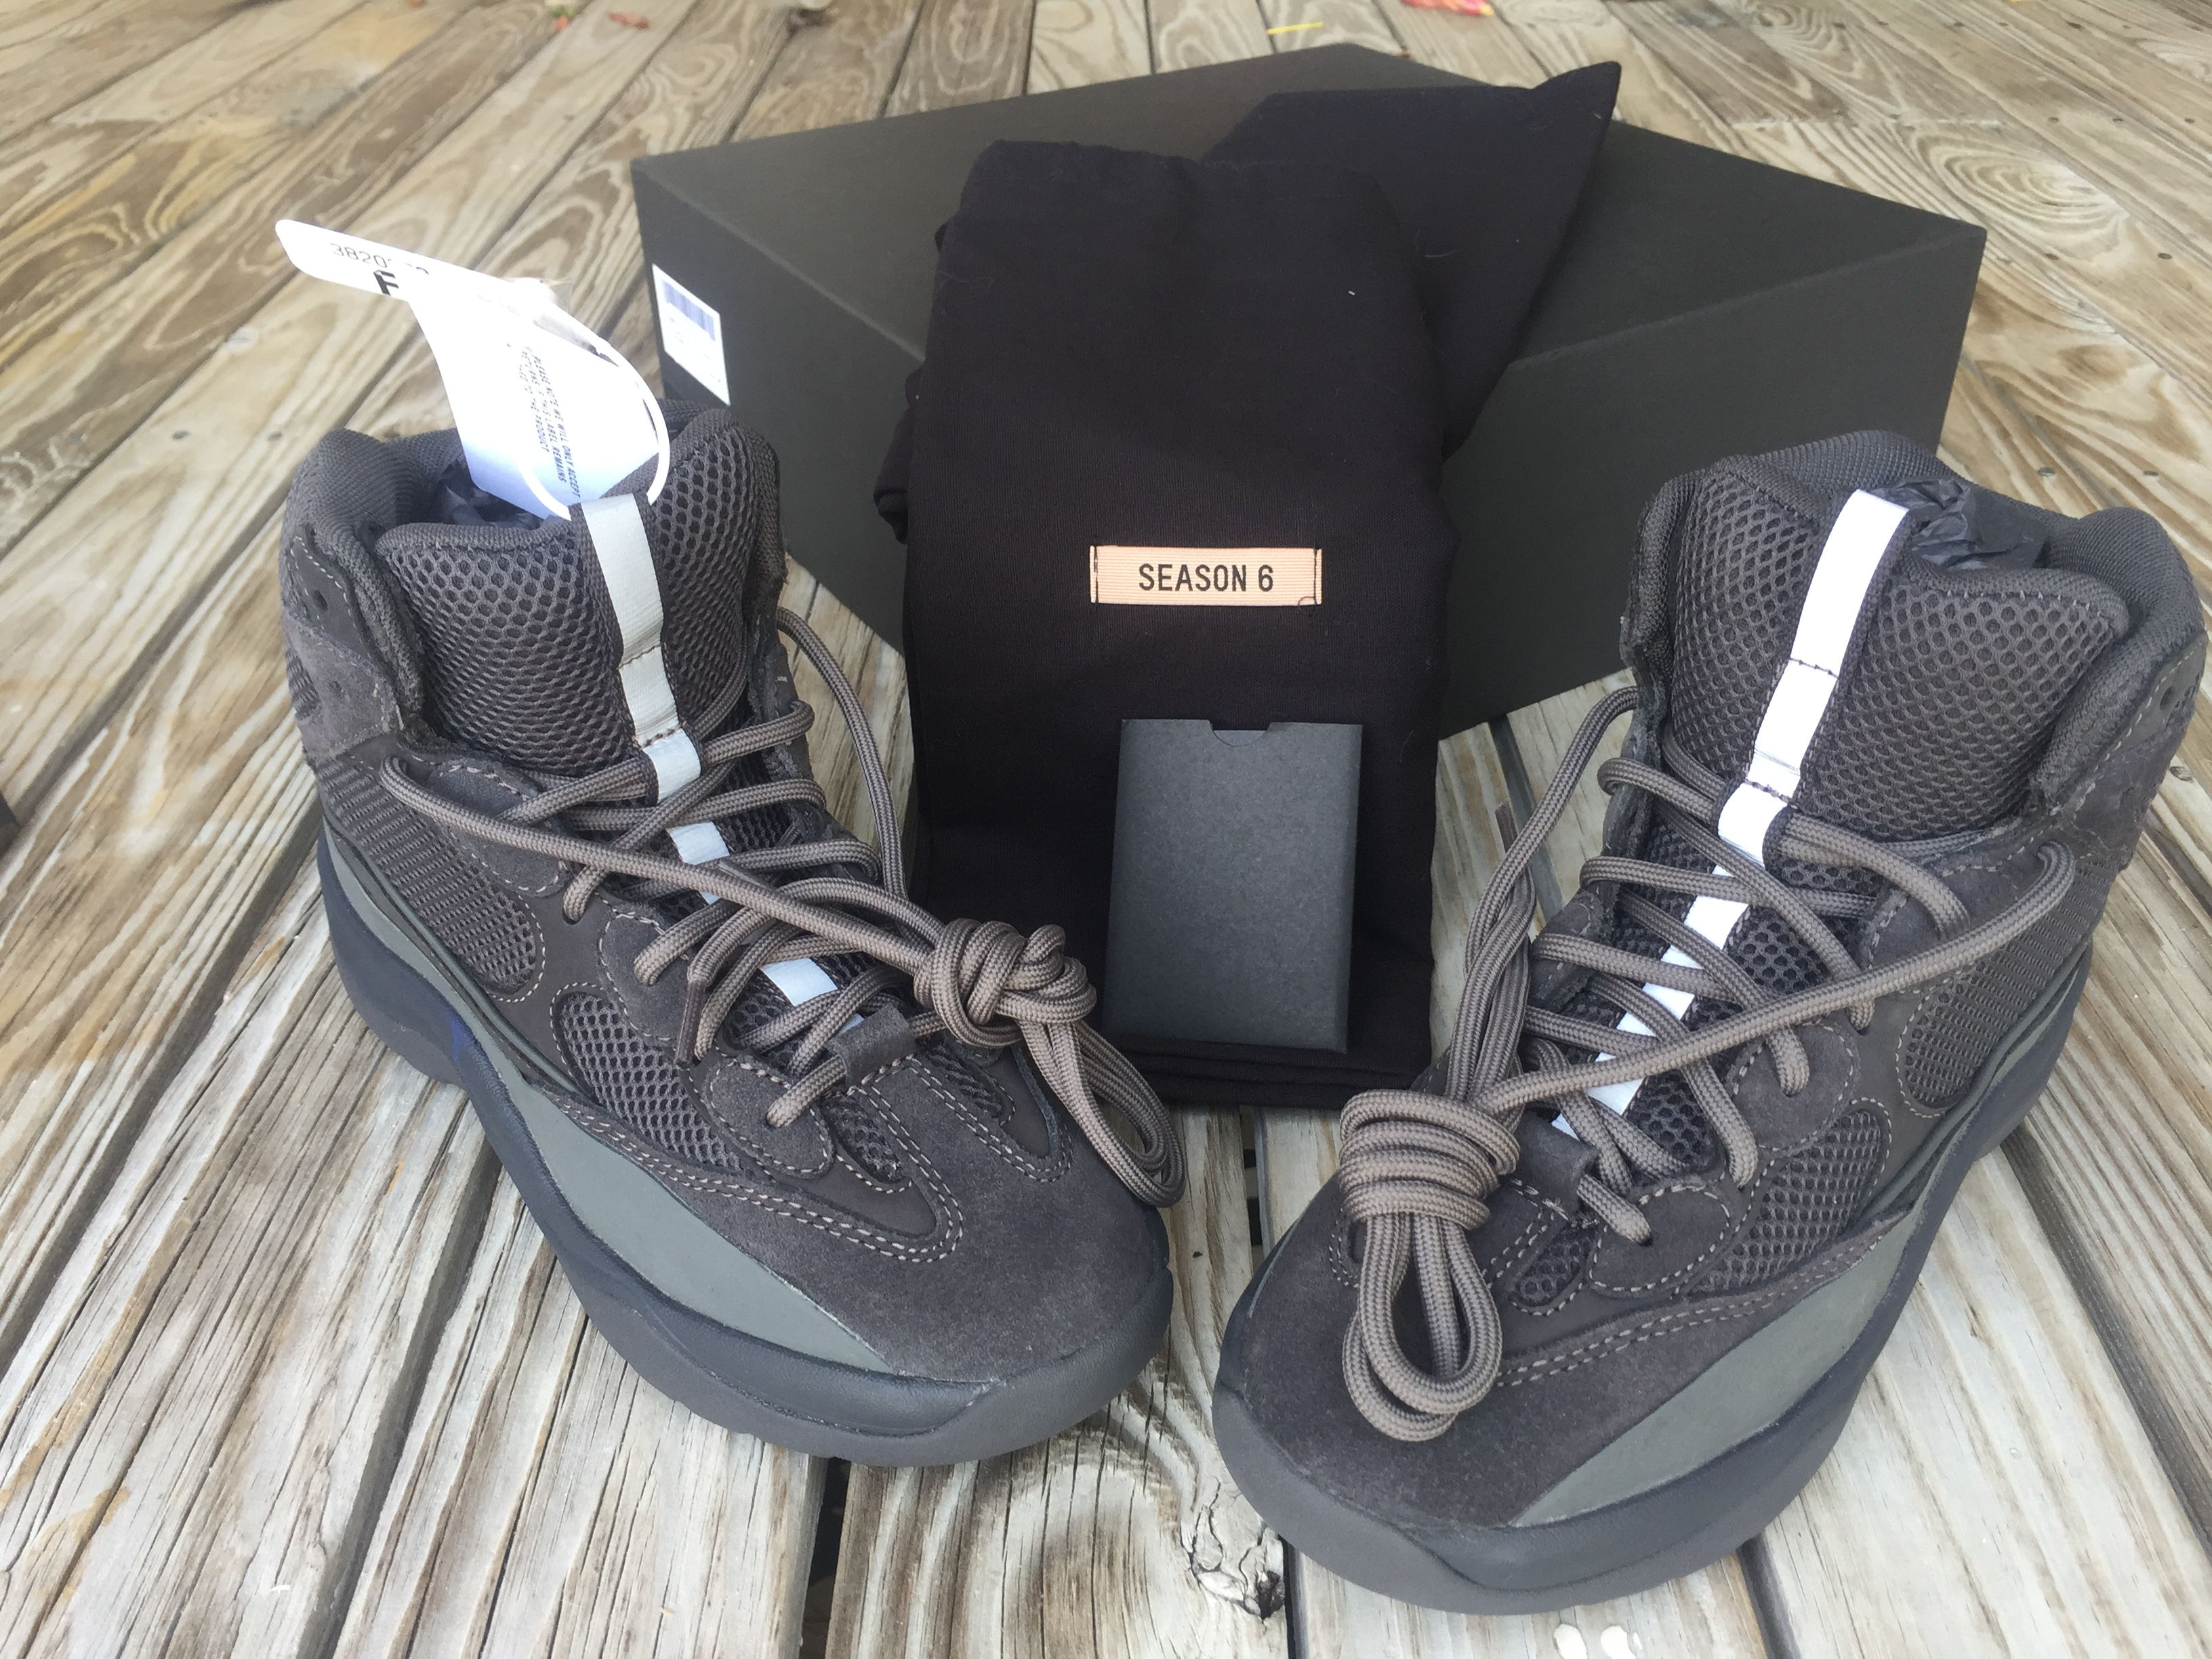 4106c070b Yeezy Season Desert Rat Boot Size 7 - Boots for Sale - Grailed